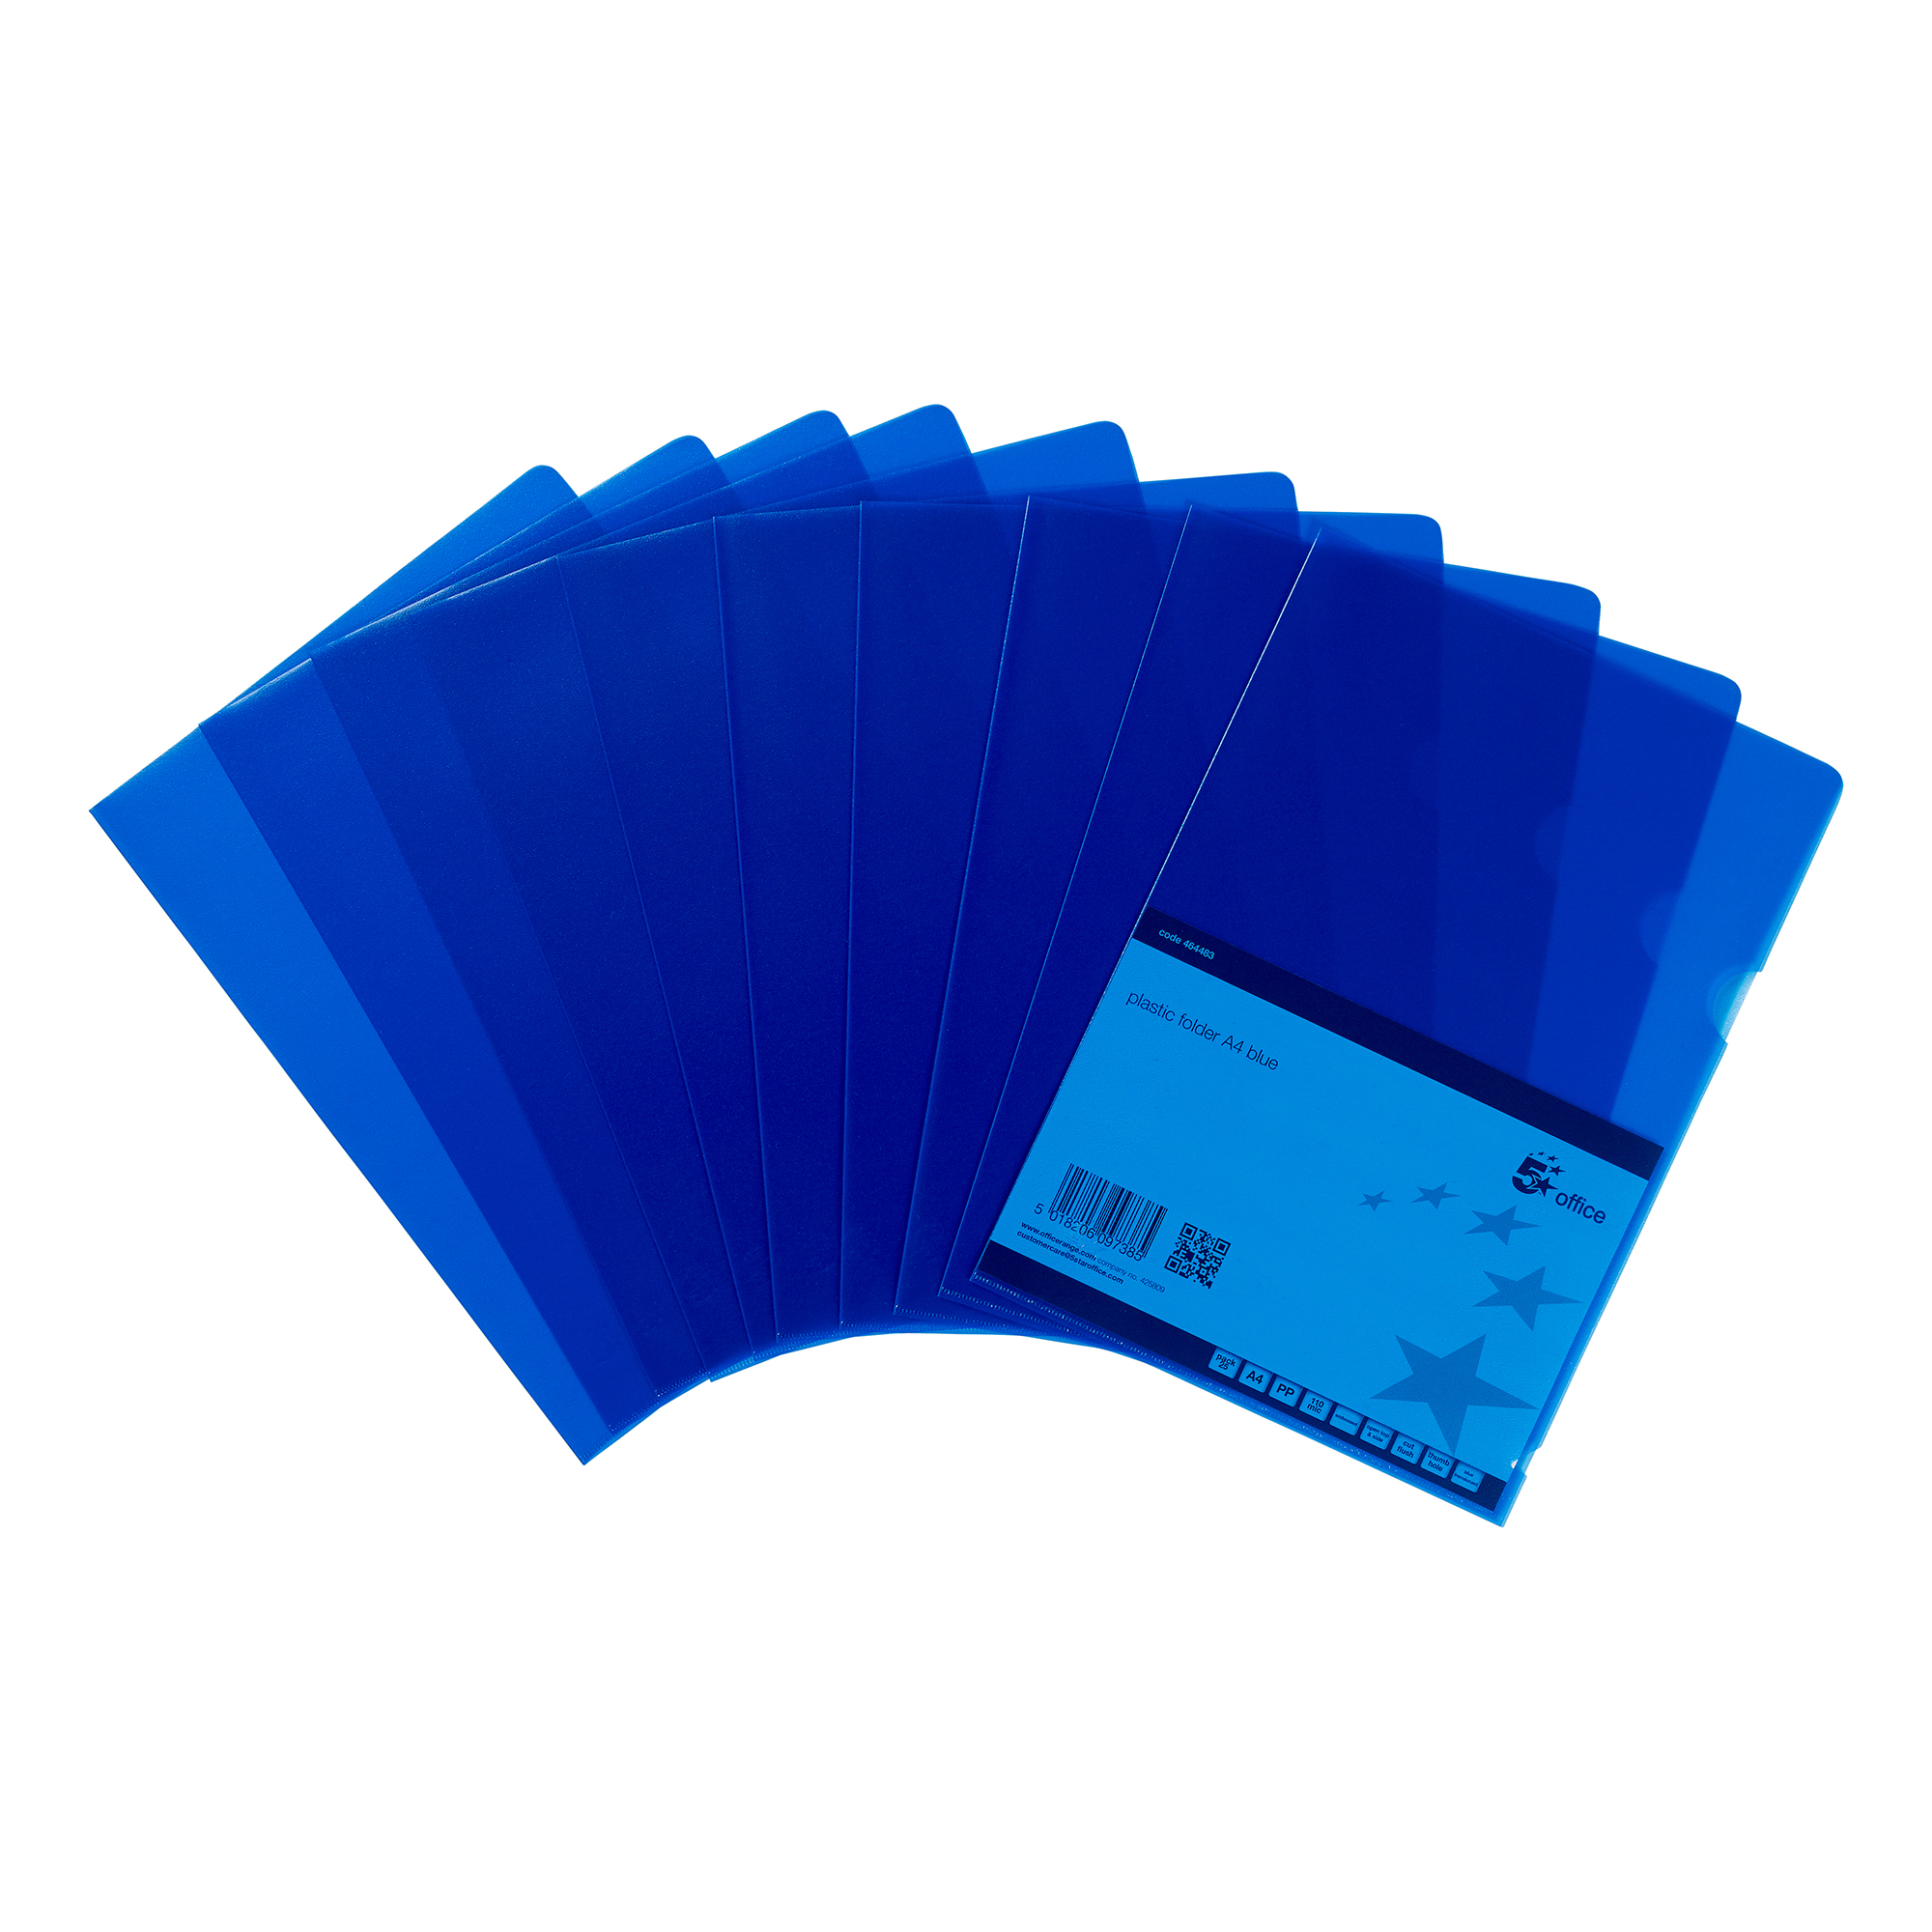 Image for 5 Star Office Folder Cut Flush Polypropylene Copy-safe Translucent 120 Micron A4 Blue [Pack 25]